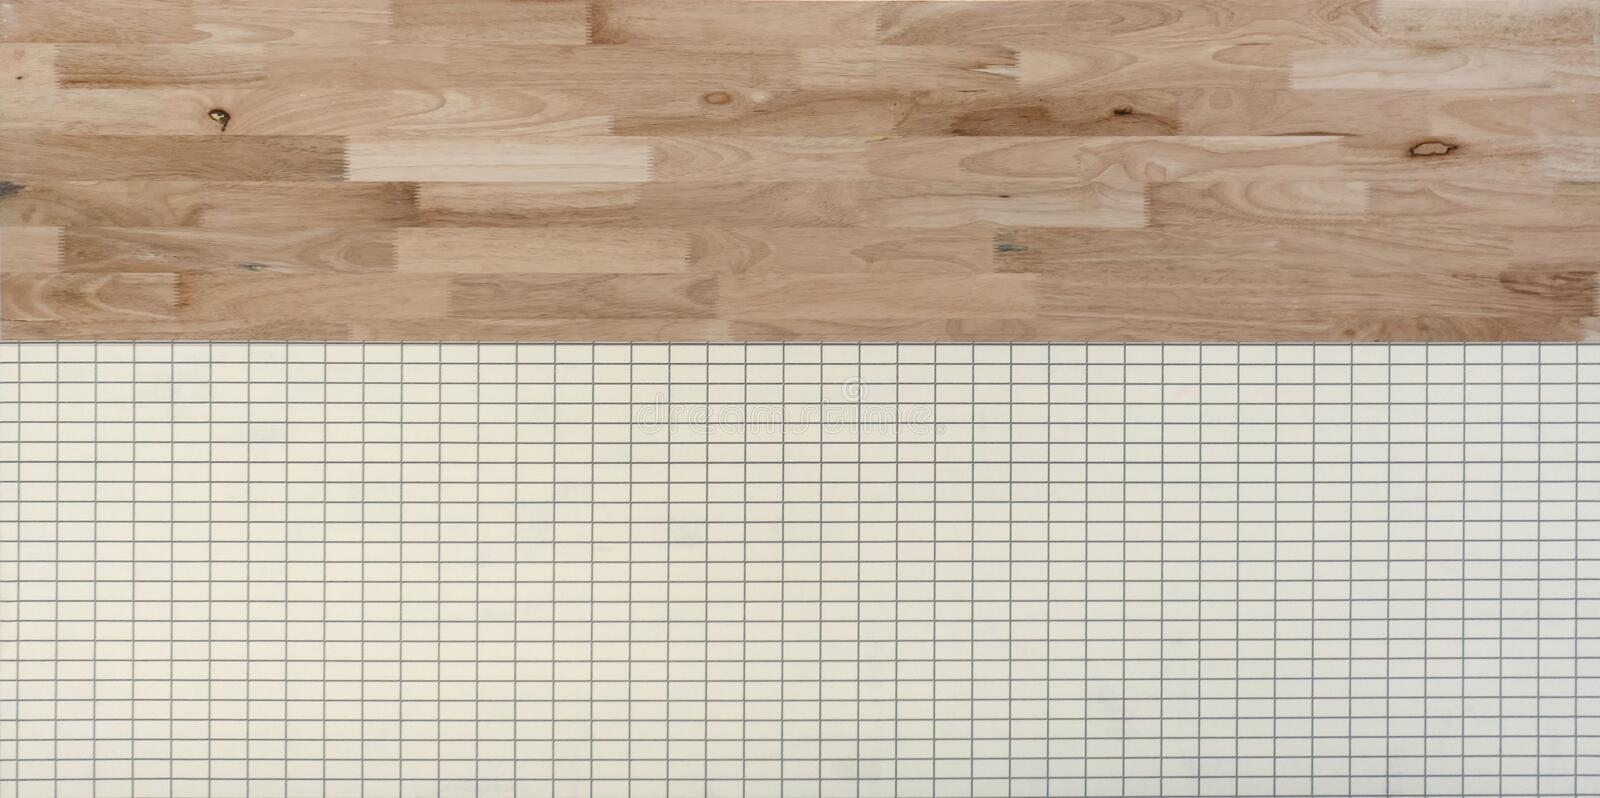 Natural wood wall and white tiles. Flooring pattern surface texture. Close-up of interior material for design decoration. Background royalty free stock photo